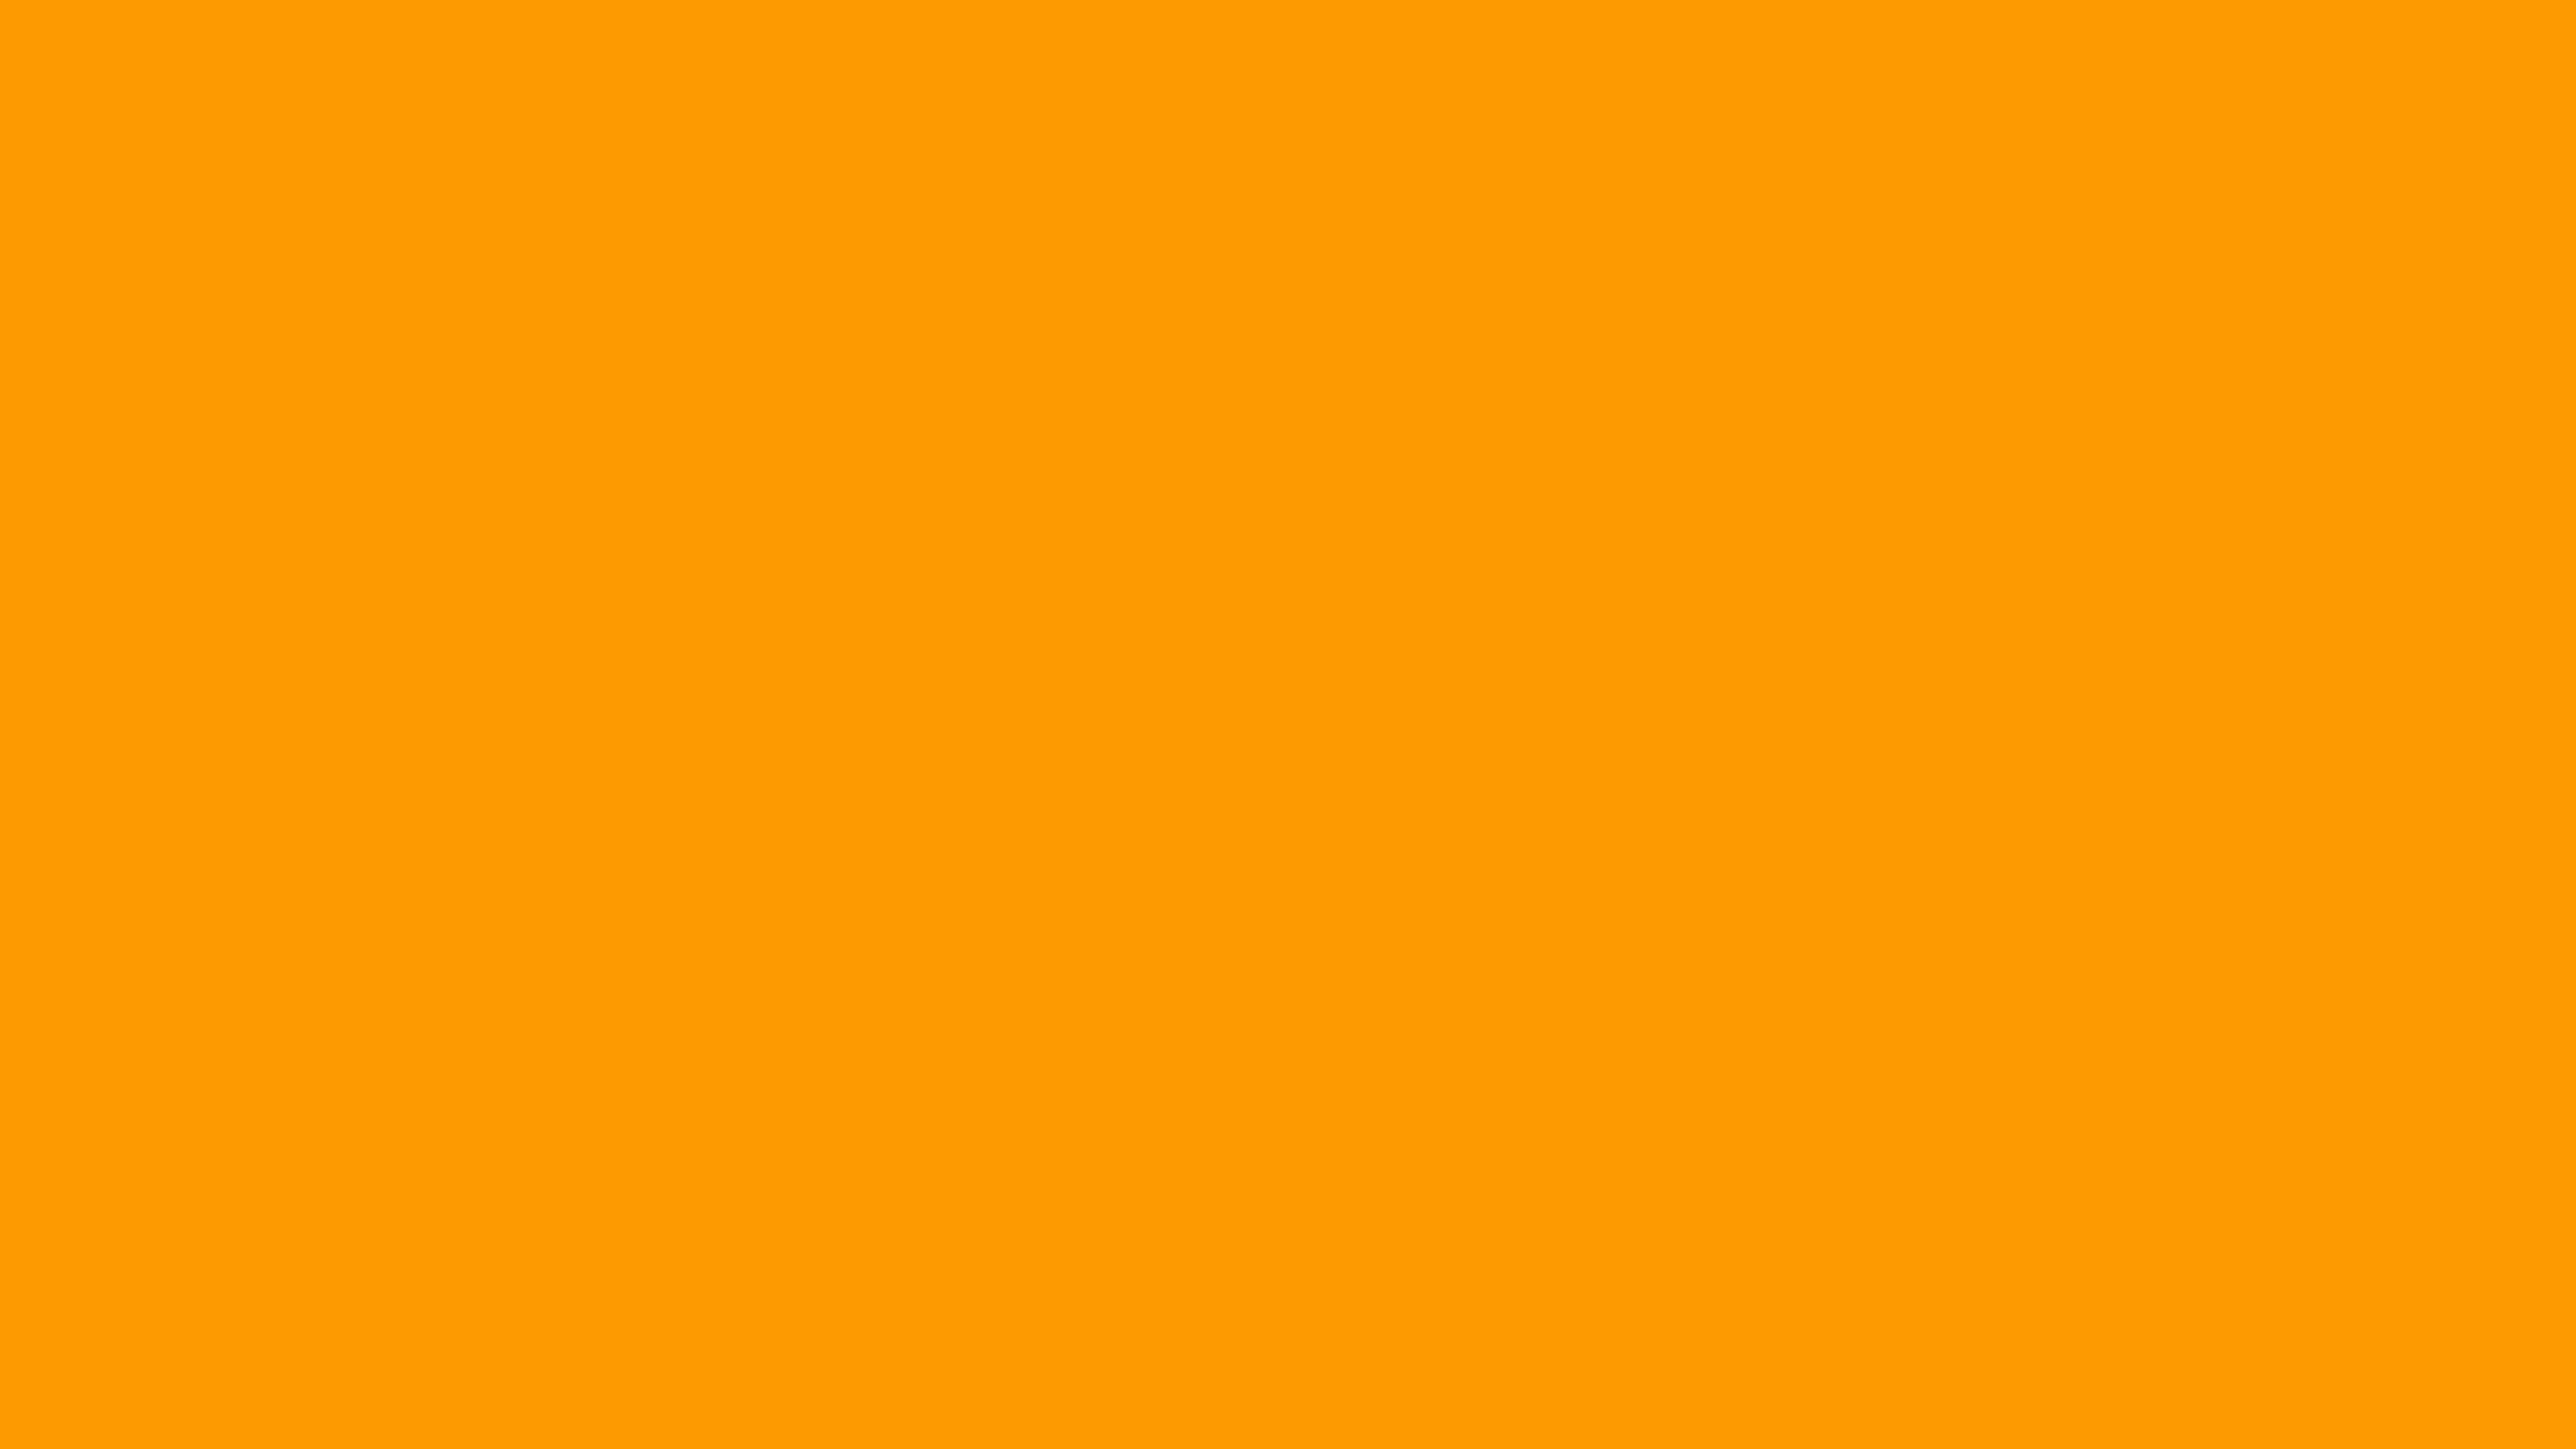 5120x2880 Orange RYB Solid Color Background